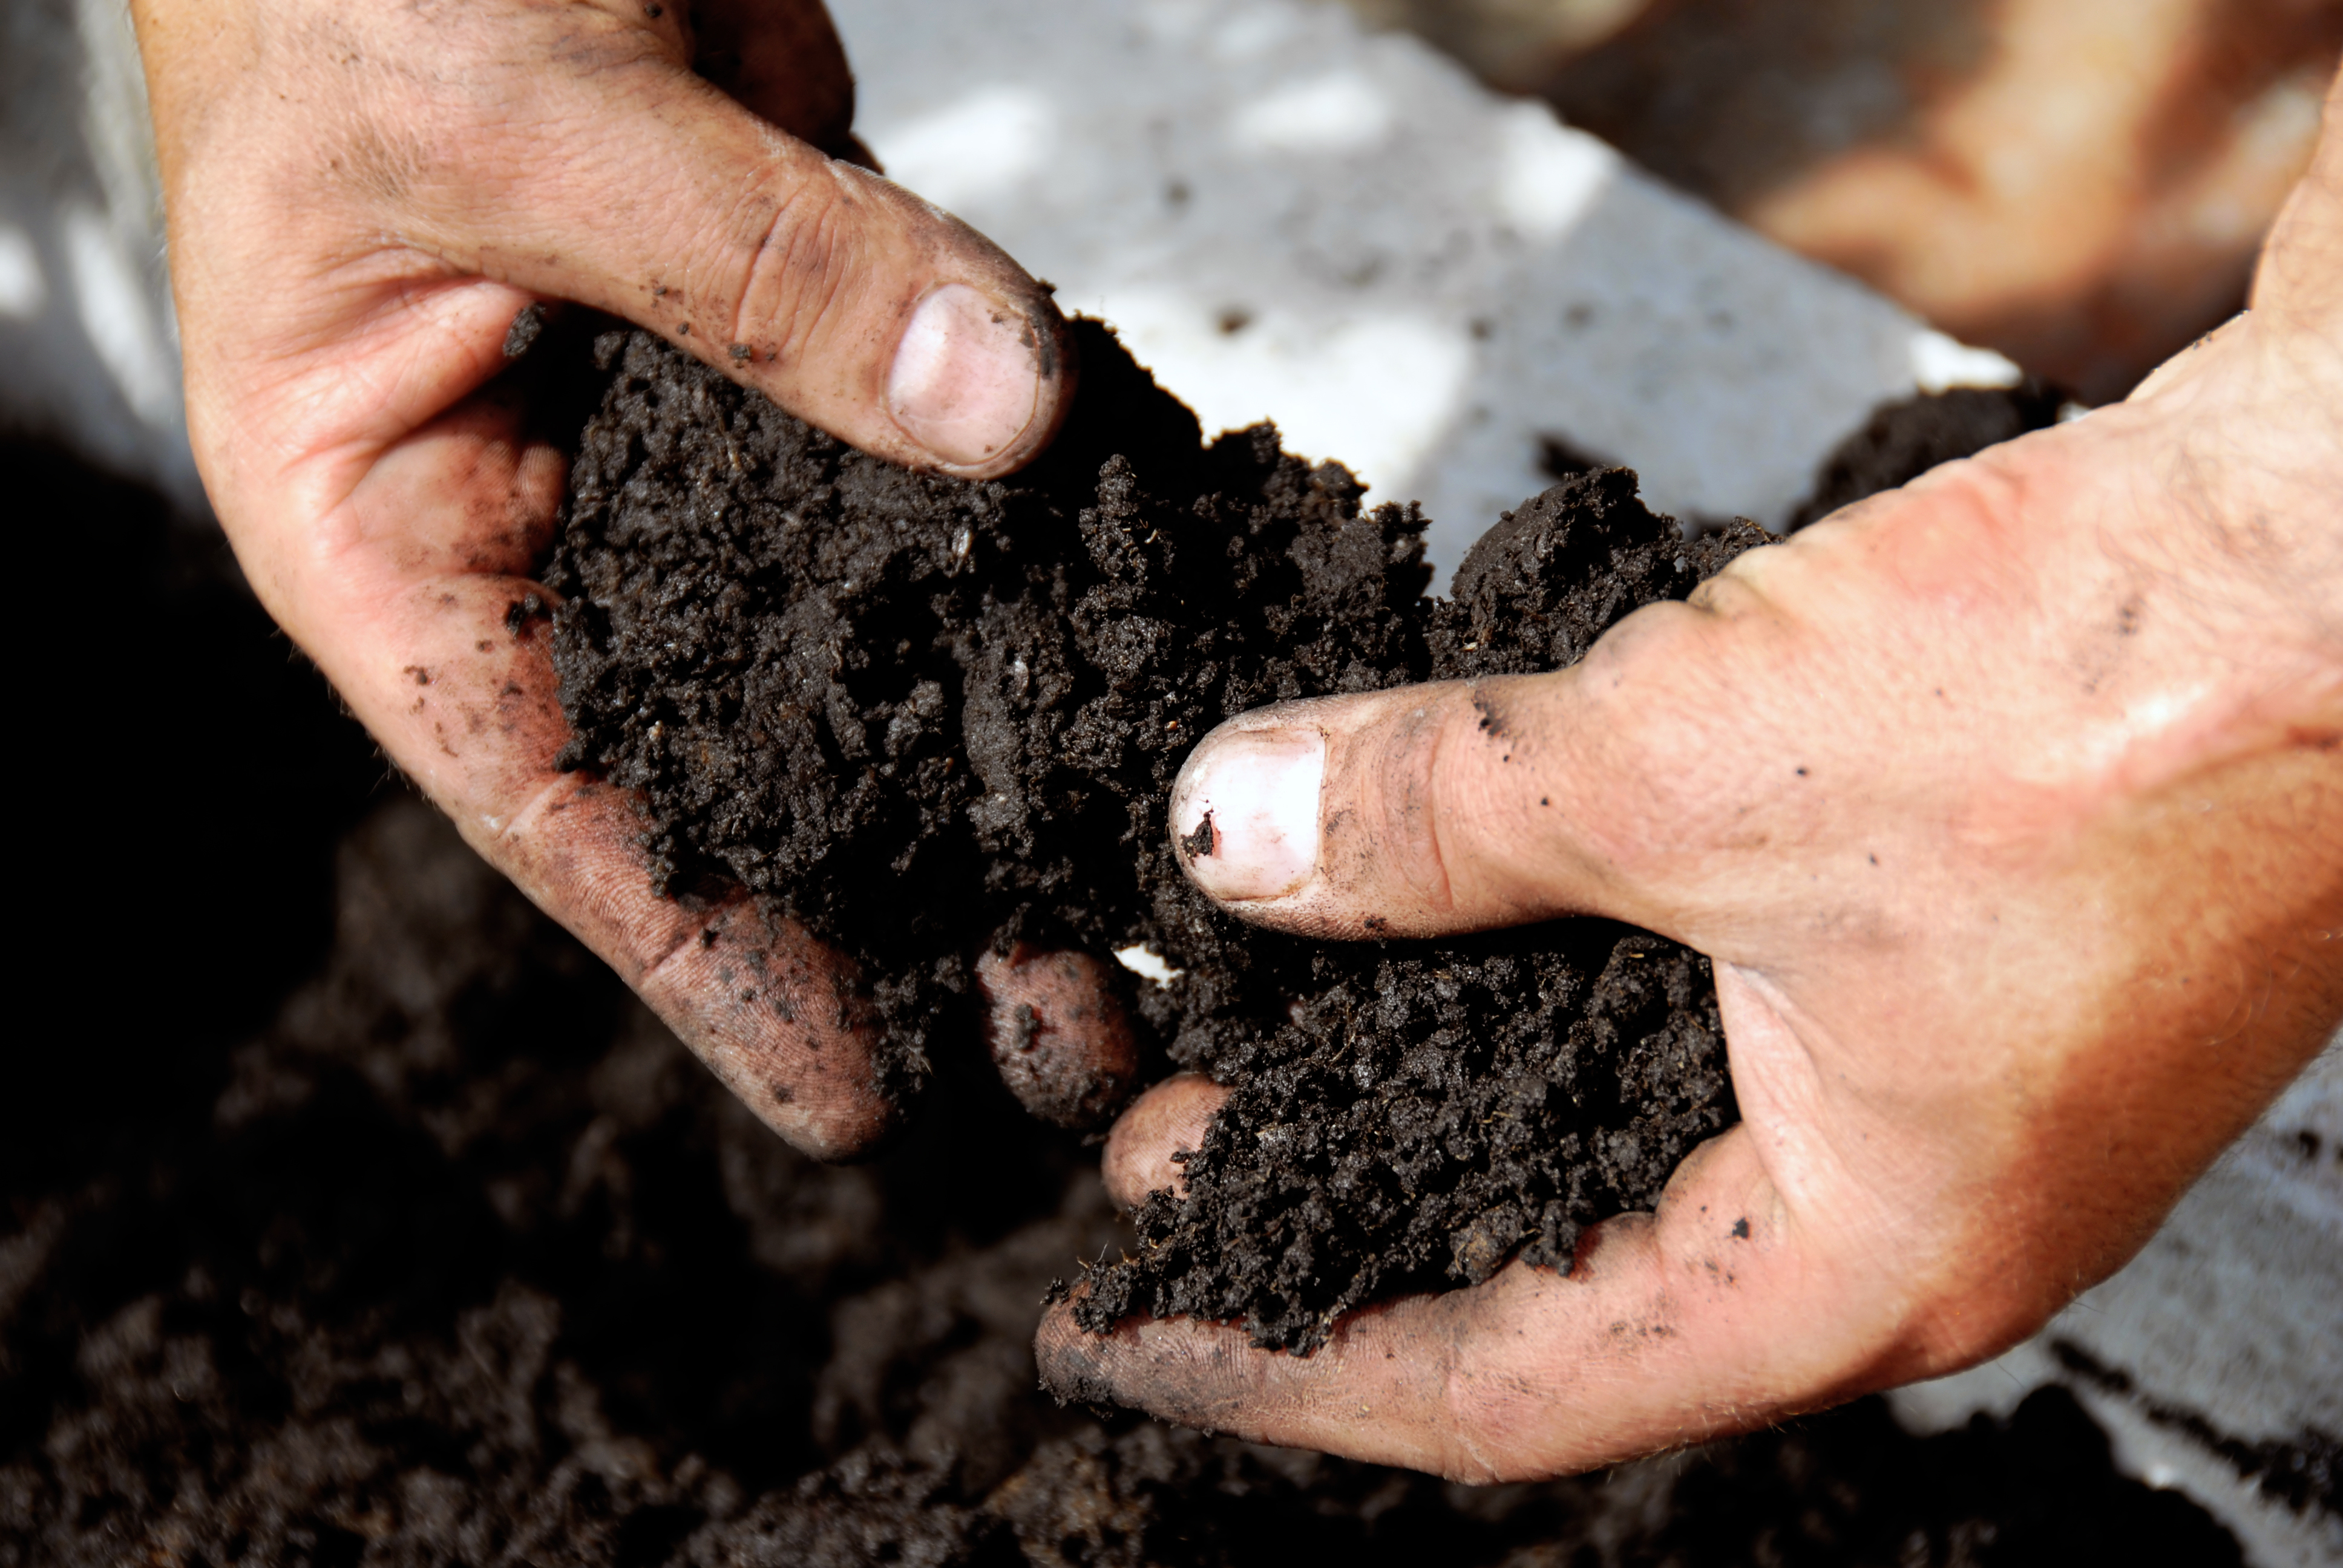 Hands in biosolids